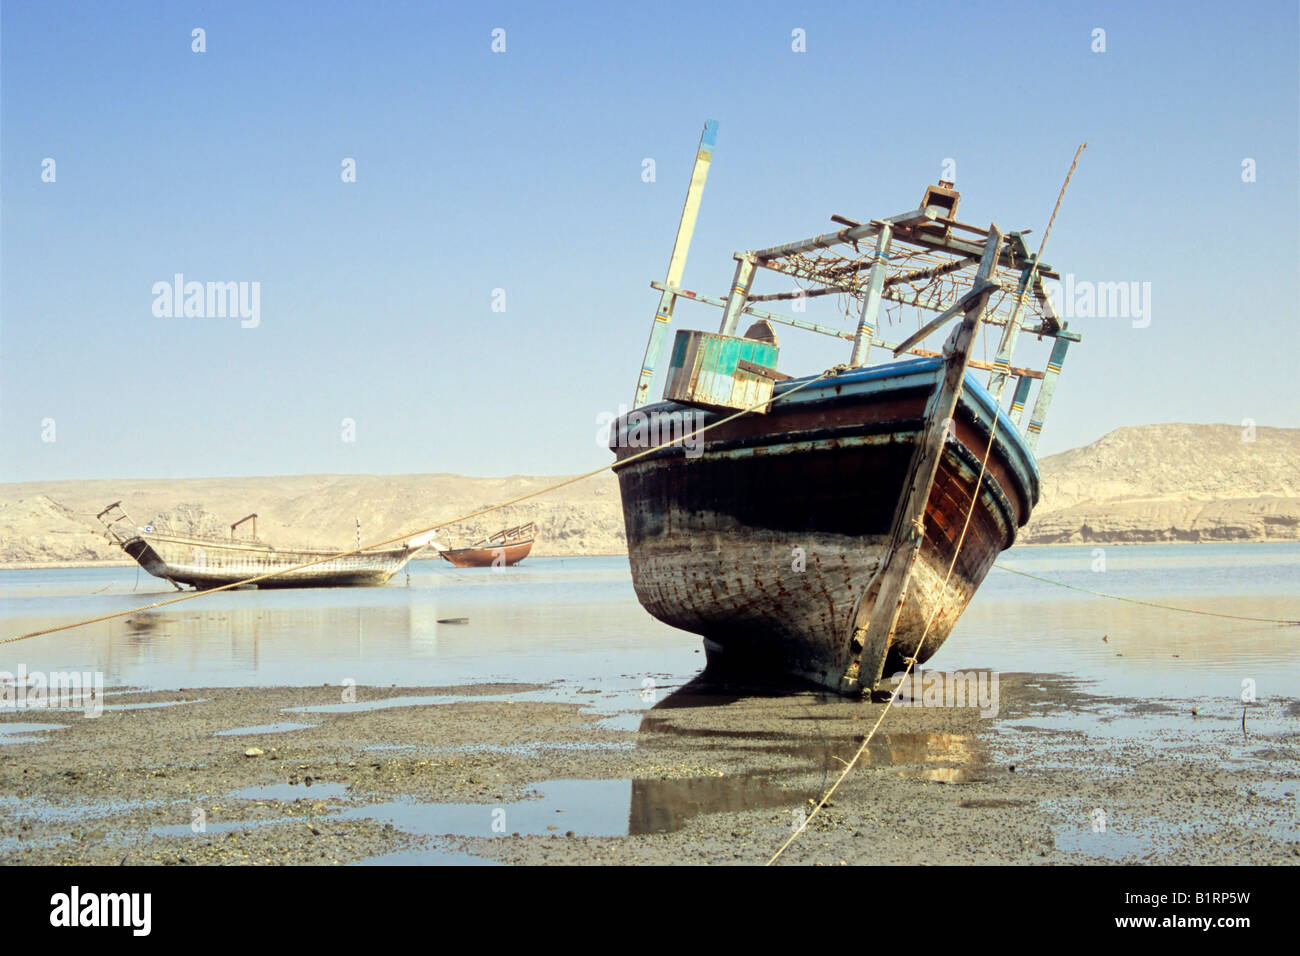 Ship cemetery at Sur, Oman, Arabian Peninsula, Middle East - Stock Image